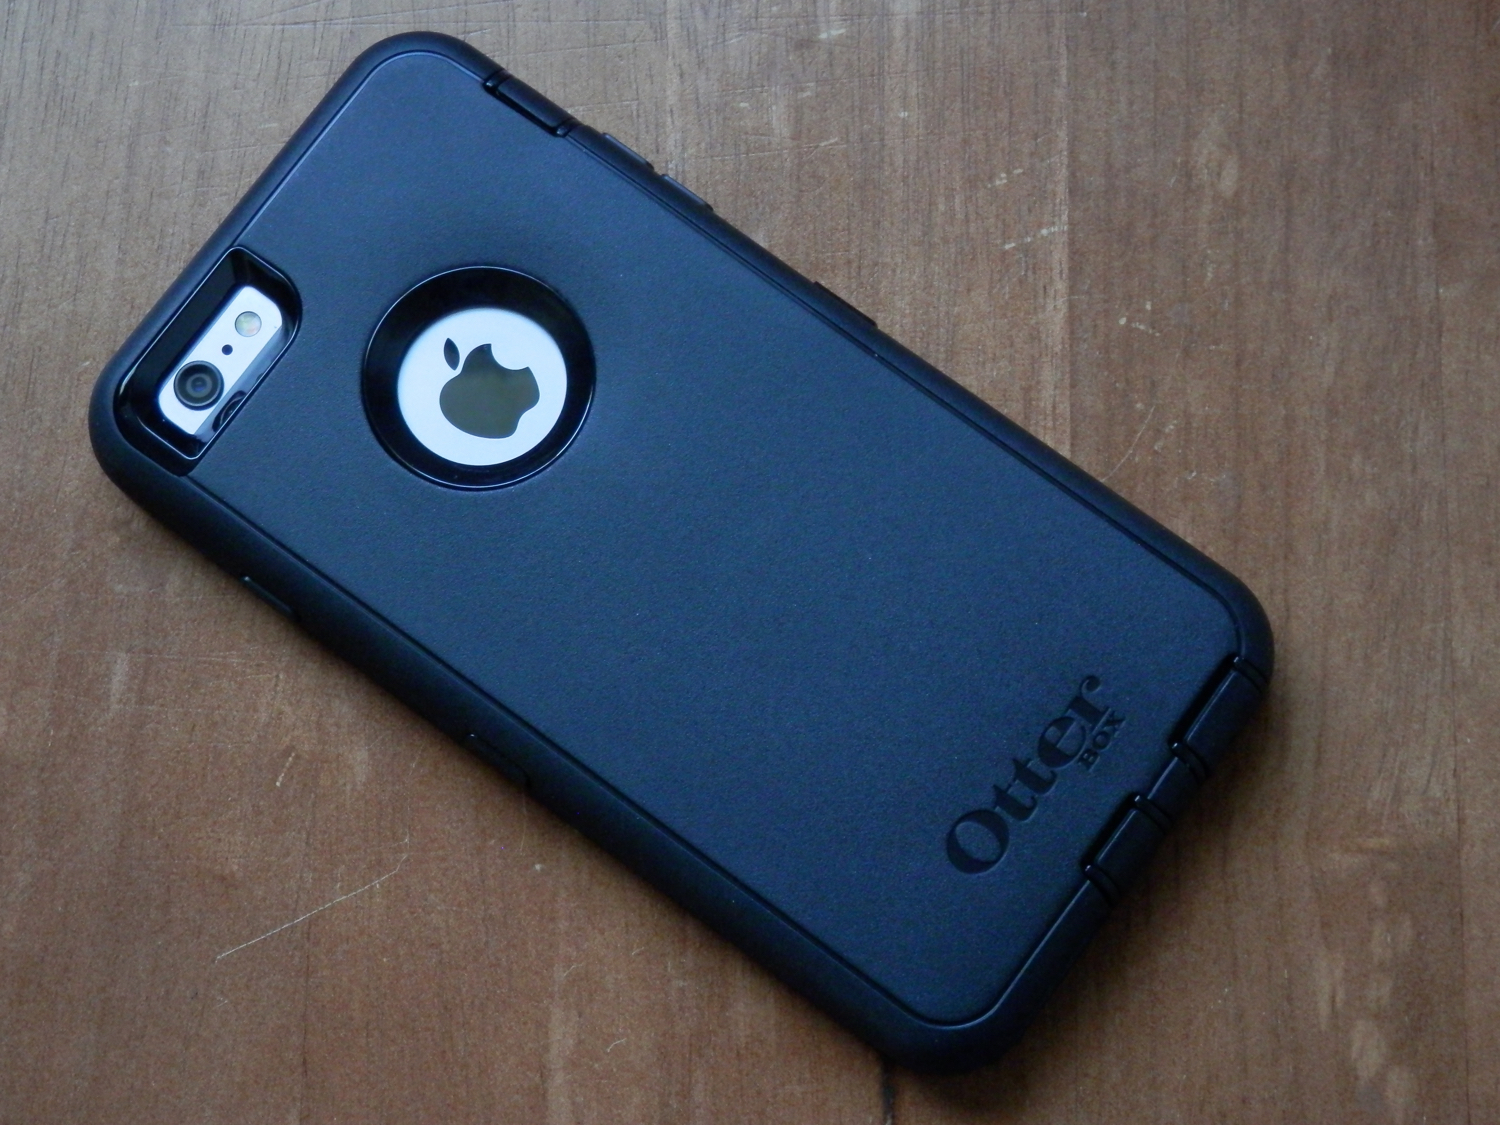 the latest 17d07 904f8 OtterBox iPhone cases shootout: which one should you get?